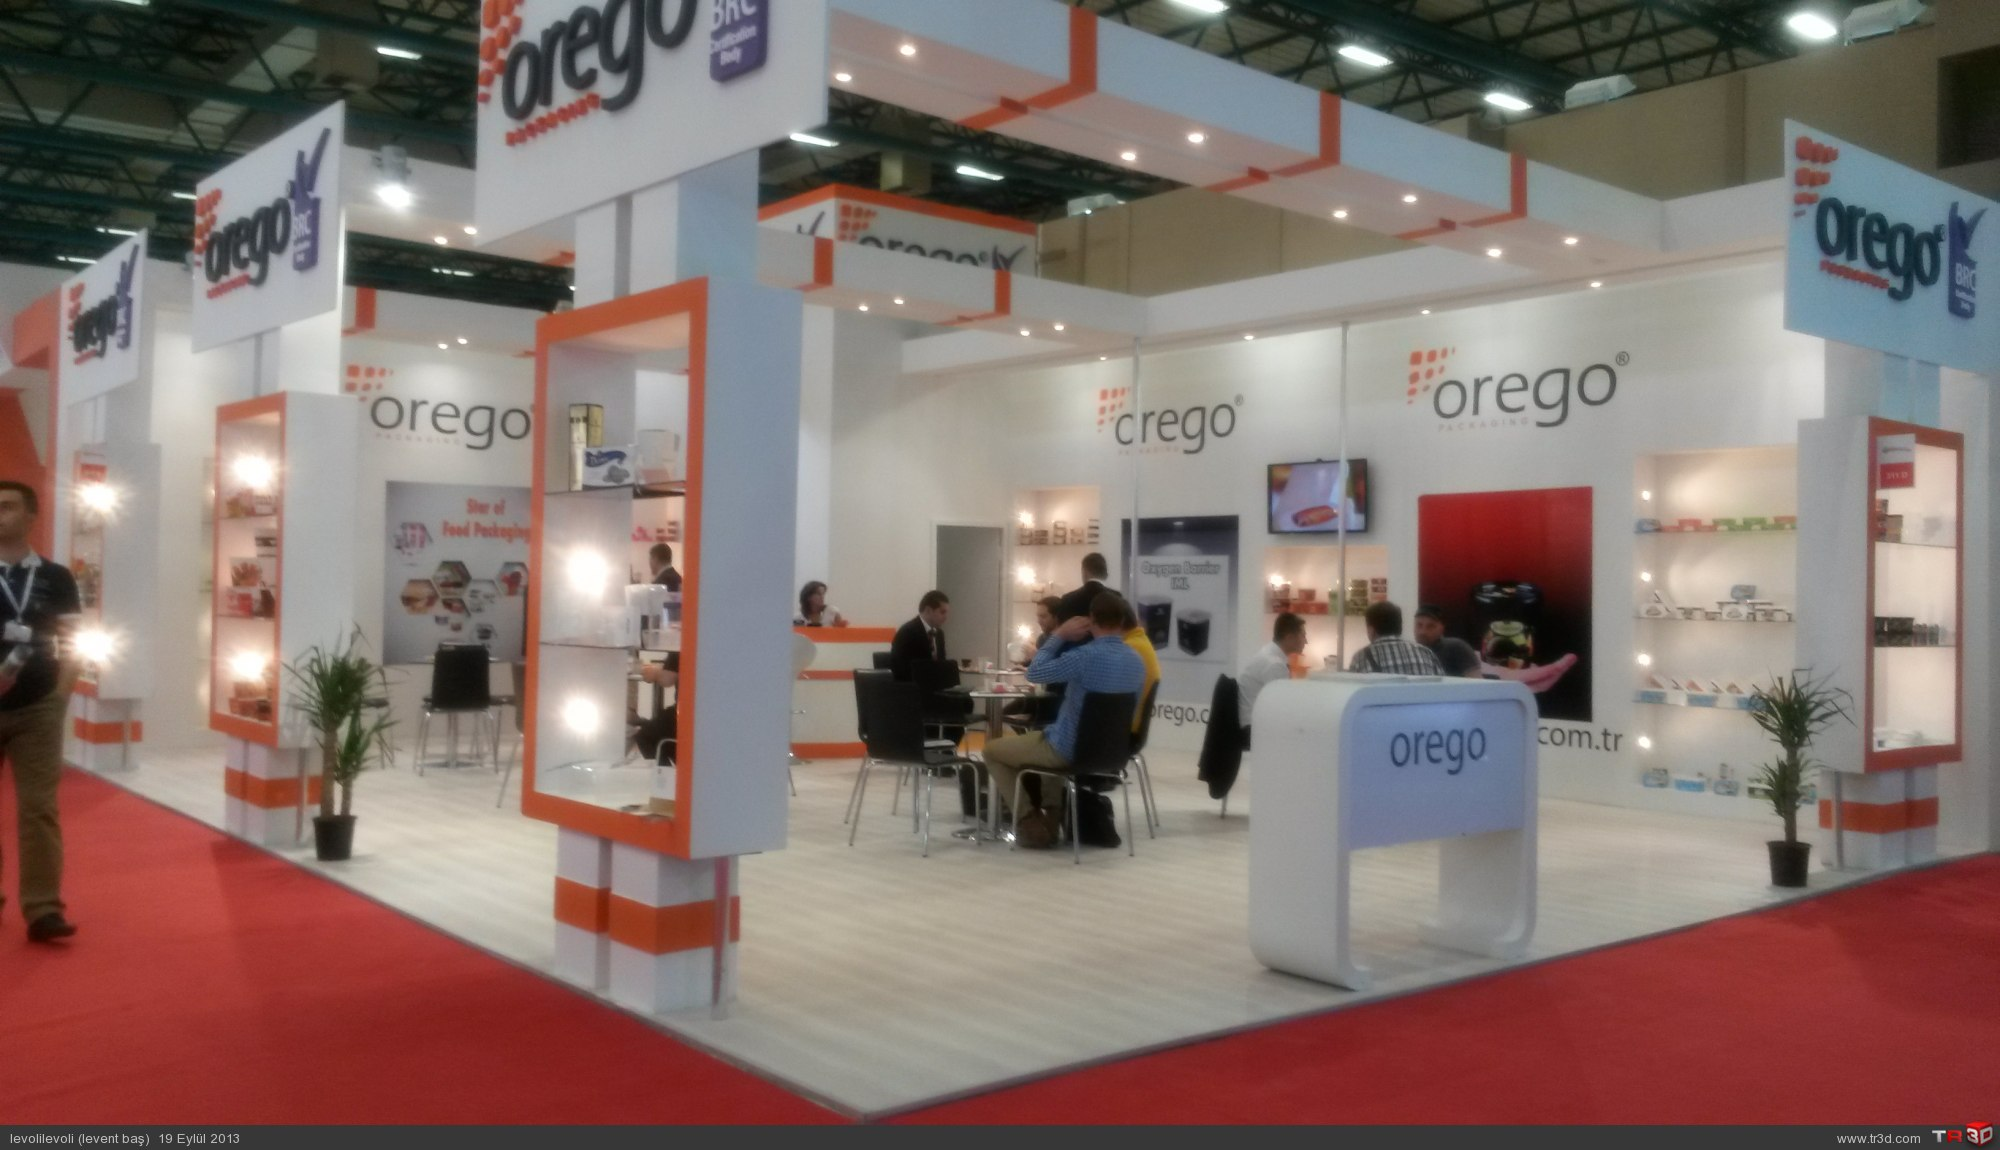 AHŞAP STAND OREGO 4